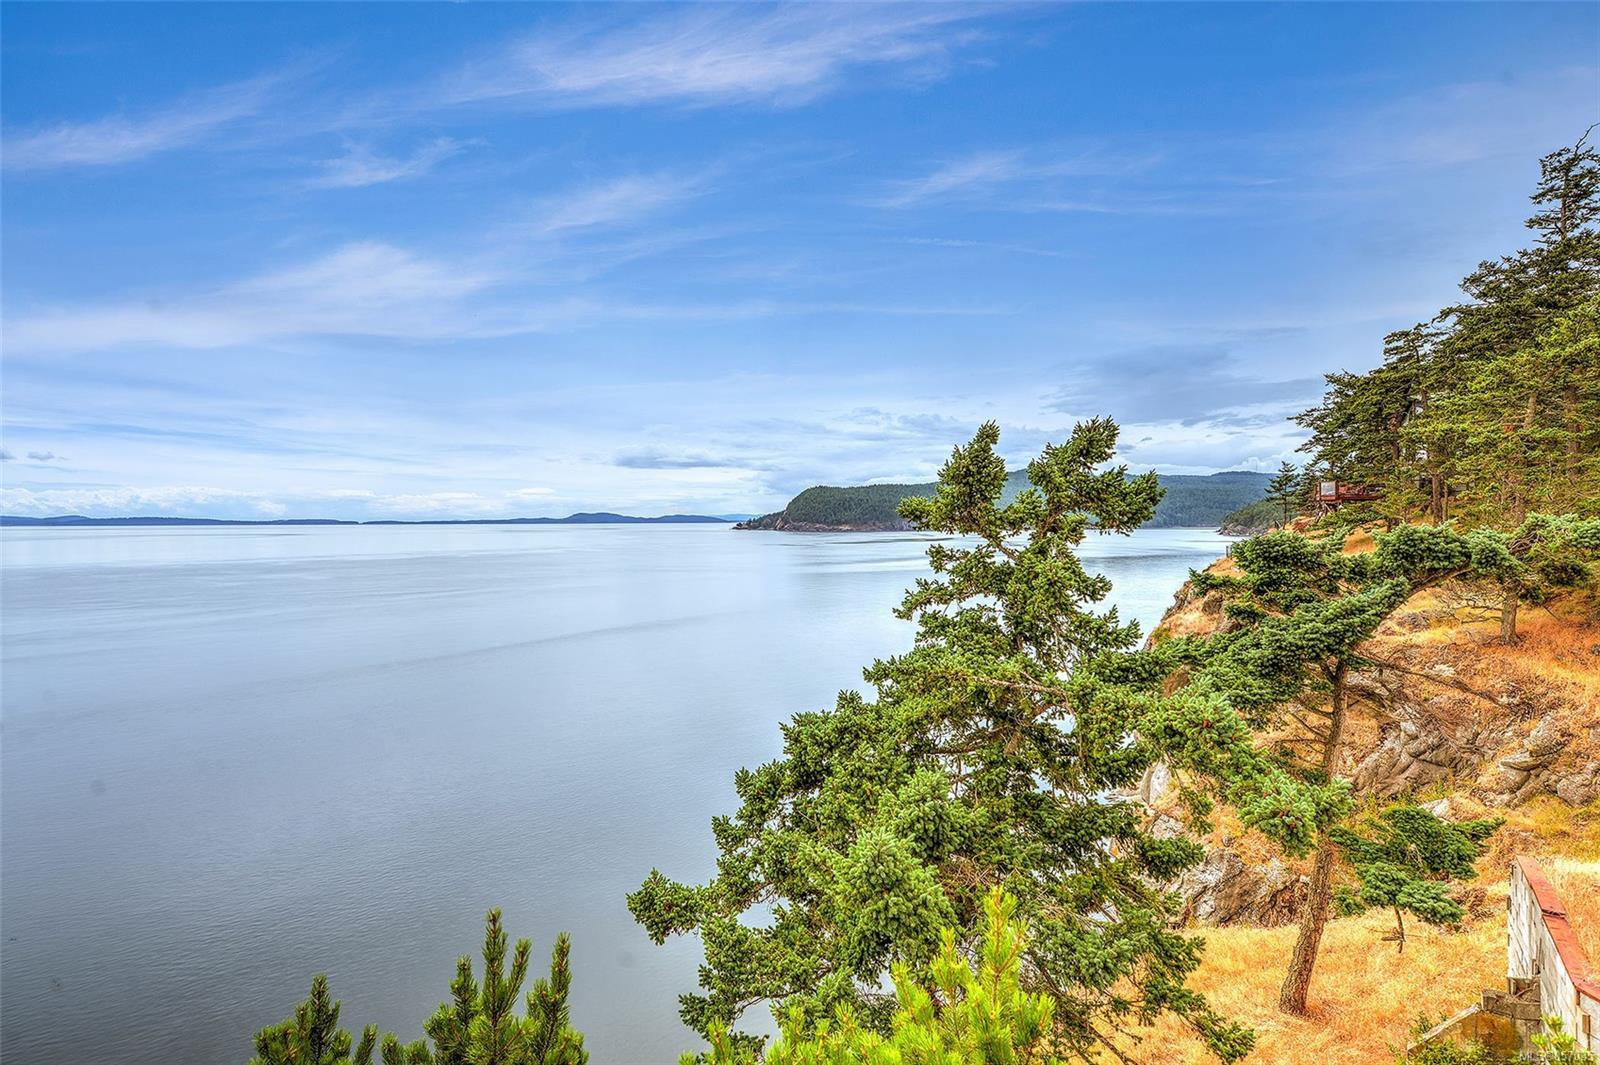 Photo 39: Photos: 172 Cliffside Rd in : GI Saturna Island House for sale (Gulf Islands)  : MLS®# 857035